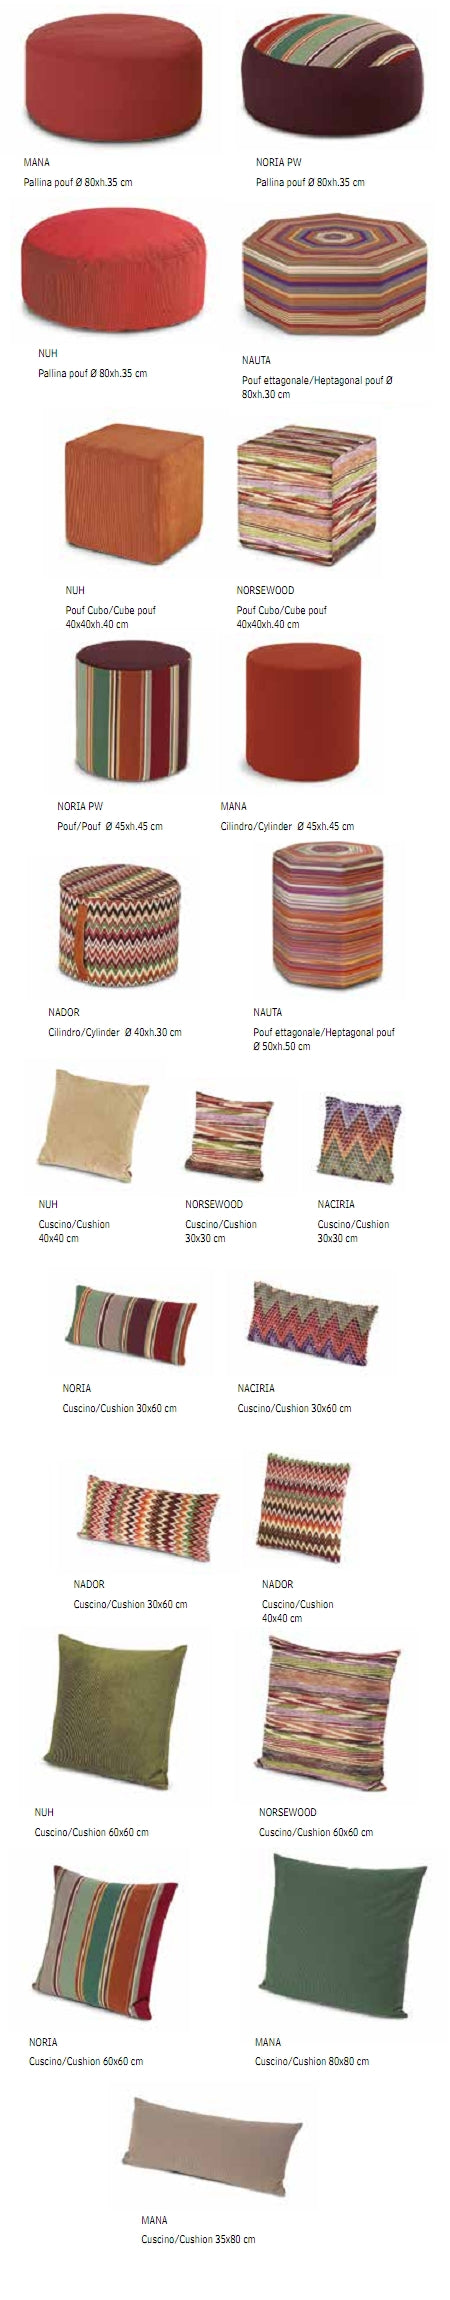 Missoni Cushion and Footstool Collection - Ombrellini Fiammati - italydesign.com